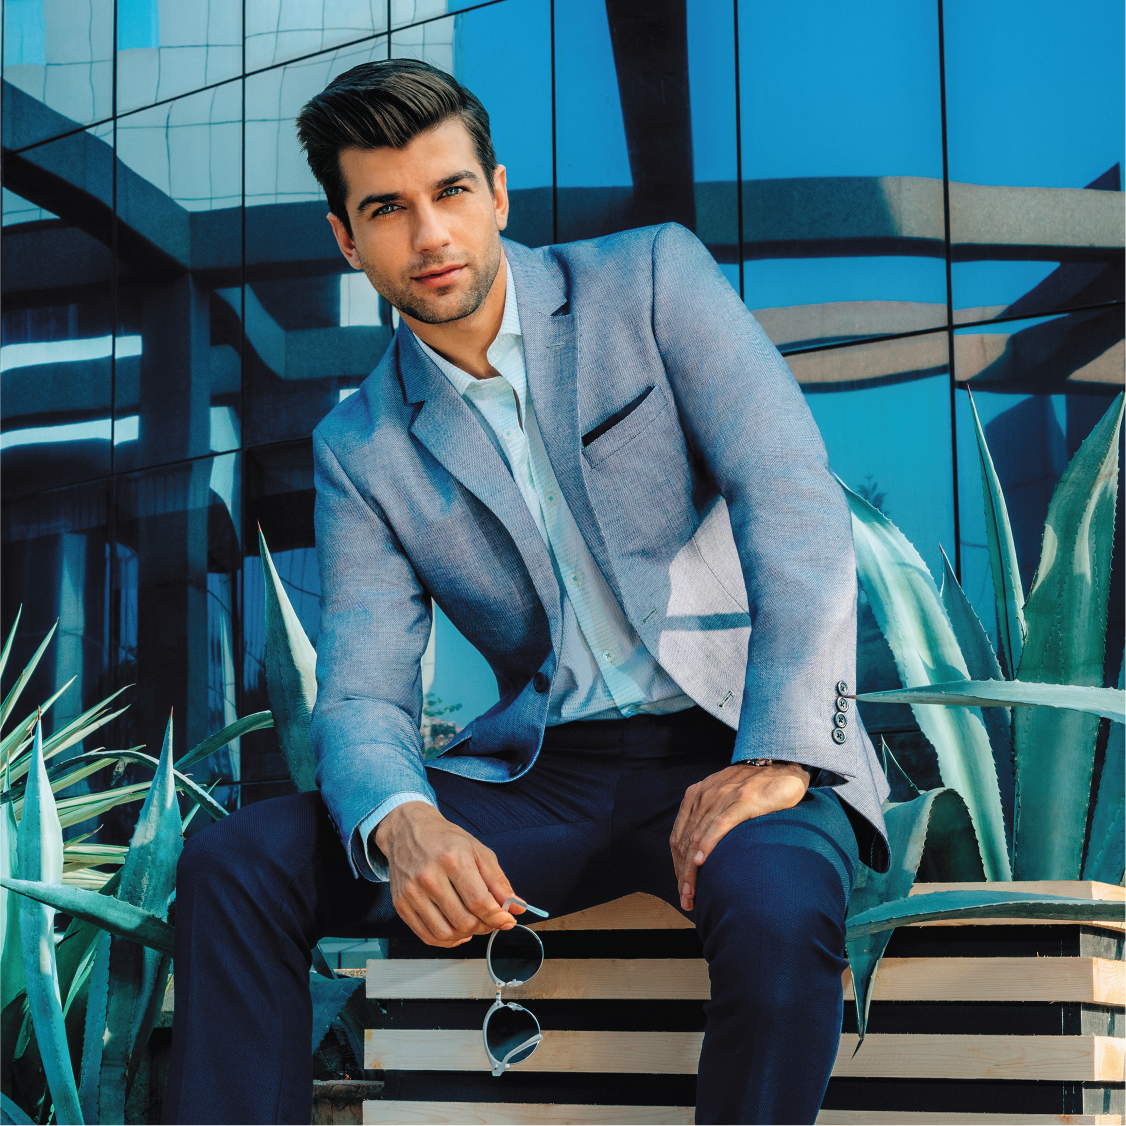 c2bf2b701e How To Dress For Work According To Your Office Dress Code